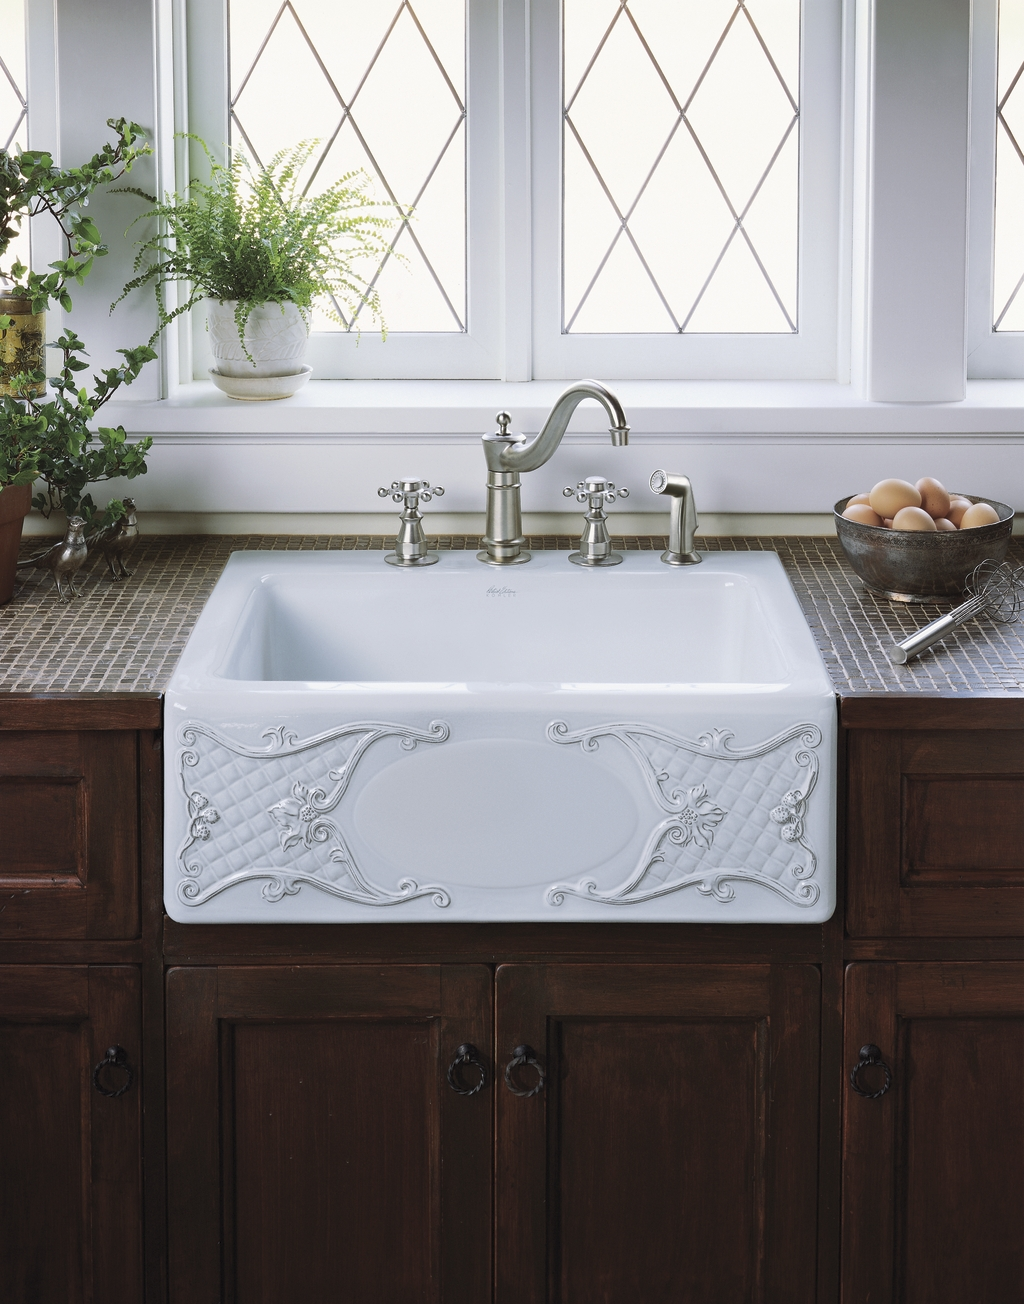 Kohler Kitchen Sink Faucet Model K